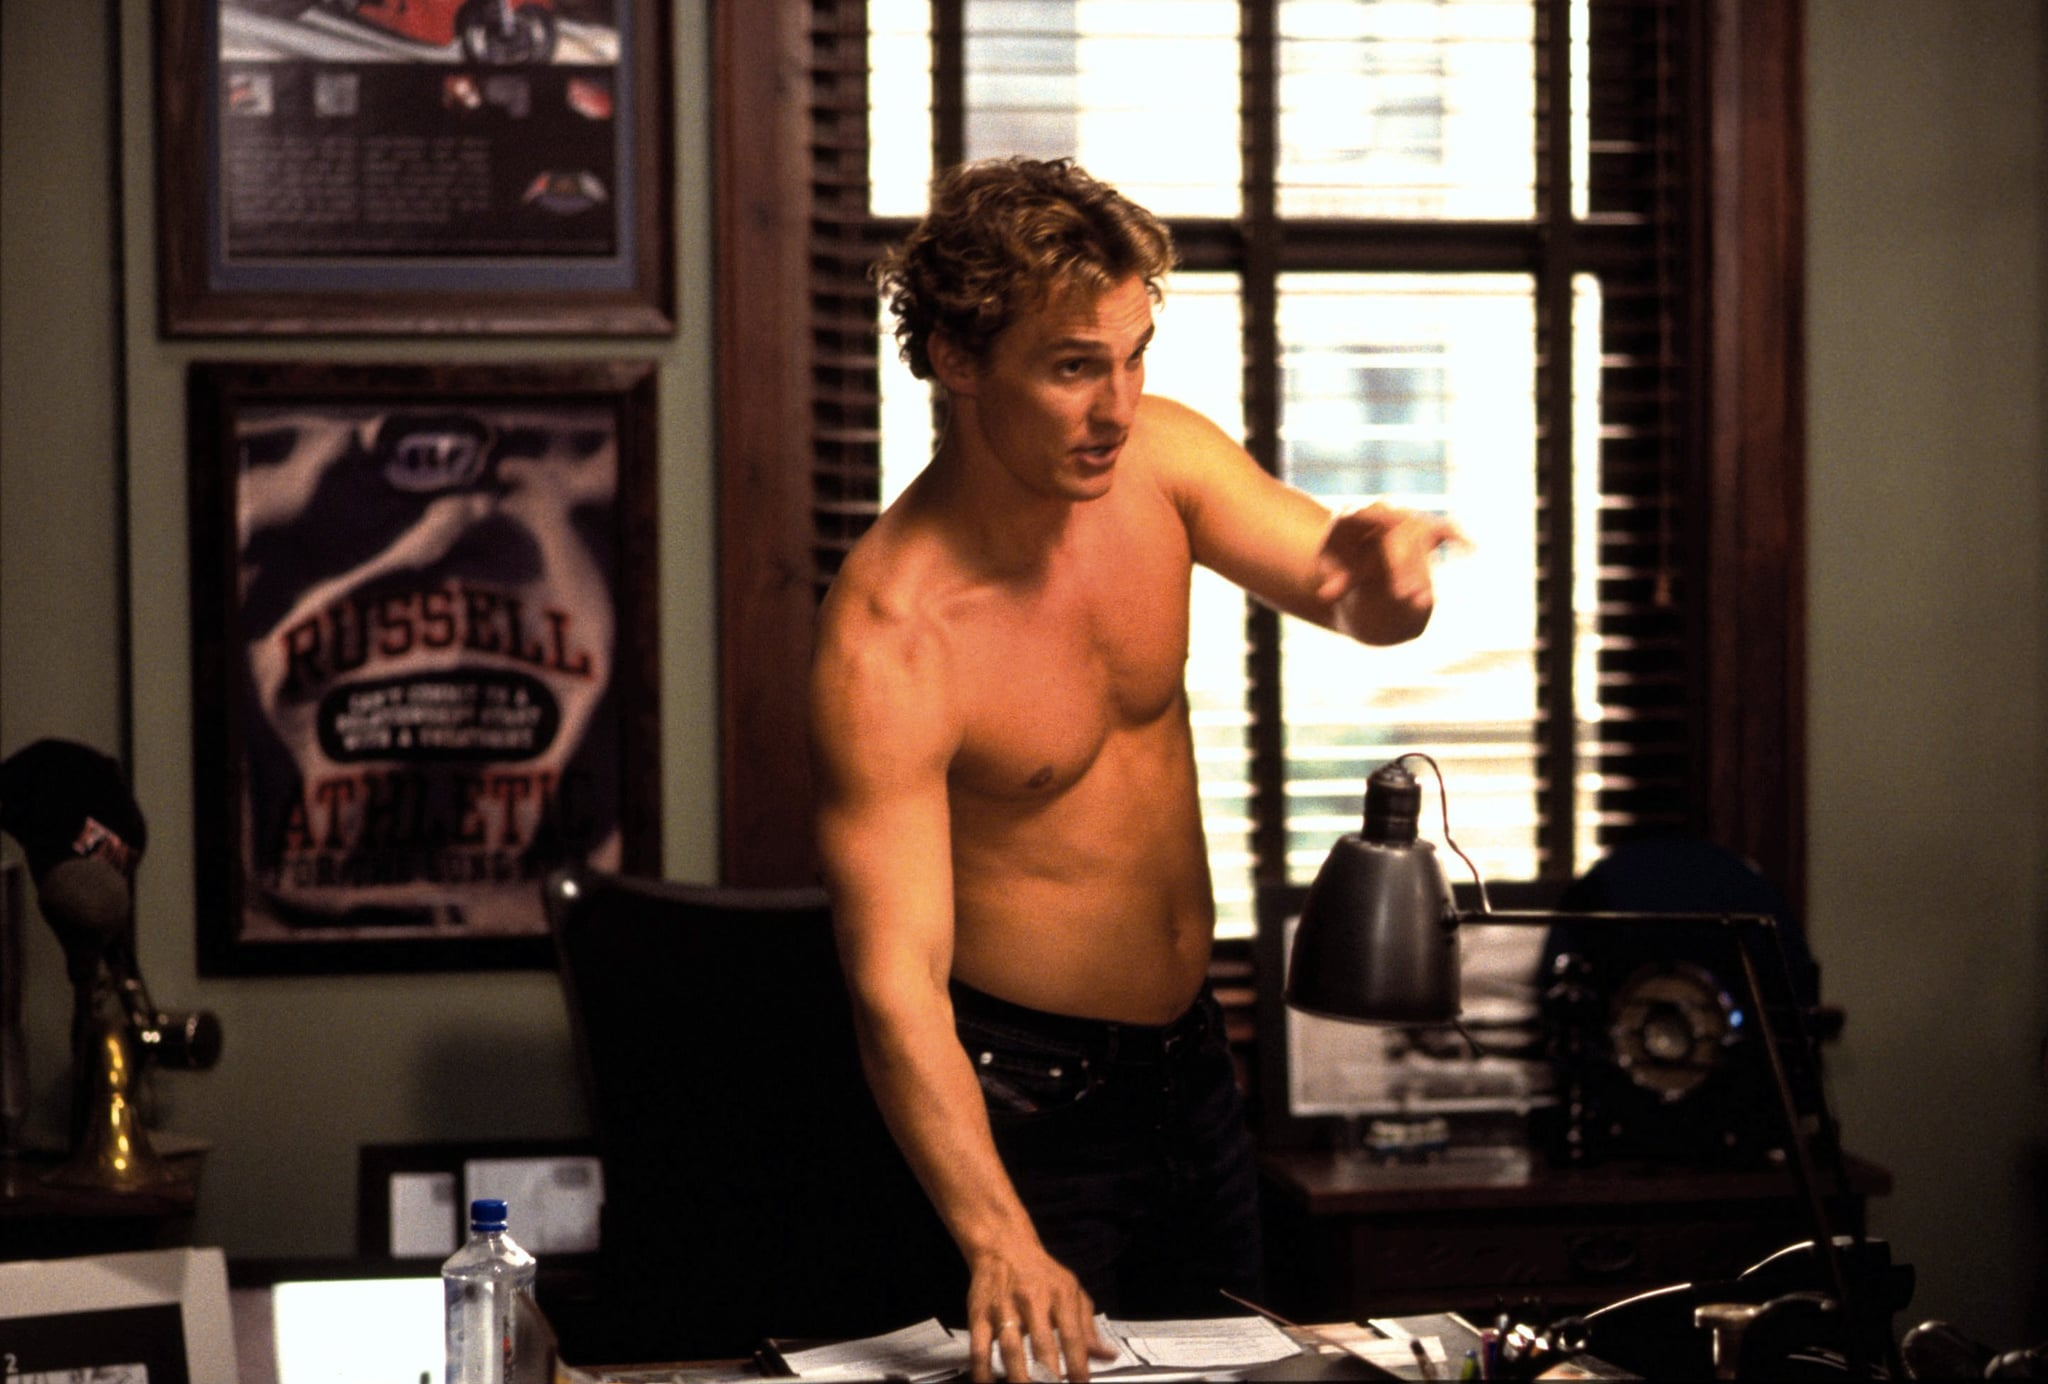 How To Lose A Guy In 10 Days 2003 27 Of The Best Feel Good Movies To Watch When You Re Having An Off Day Popsugar Entertainment Photo 6